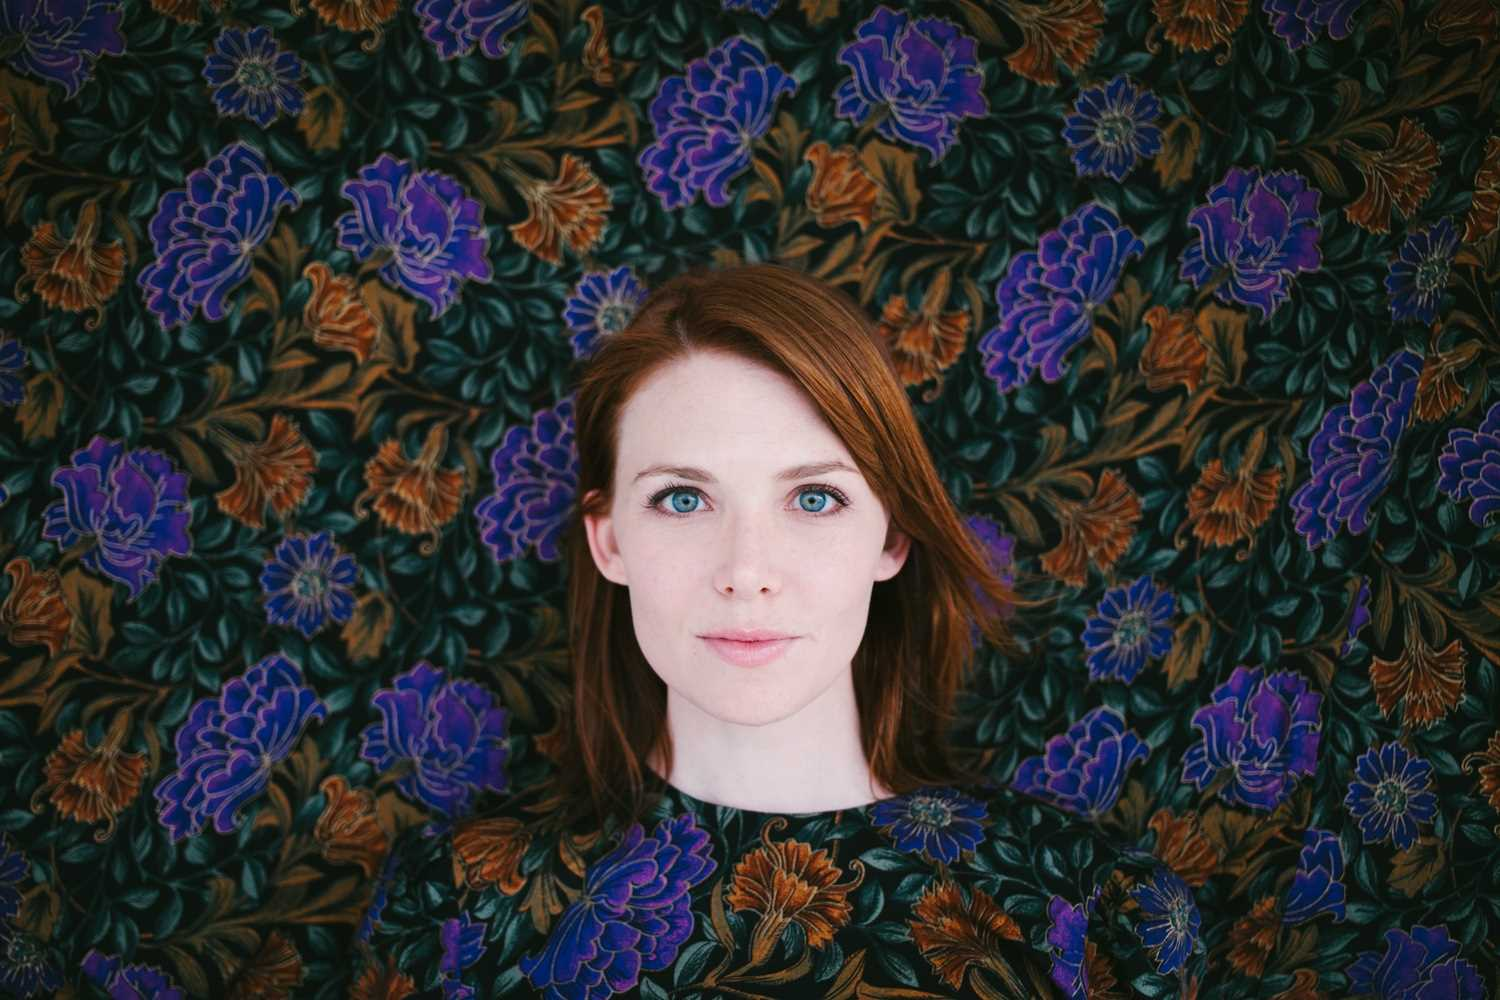 Beautiful Portraits by Emily Blincoe